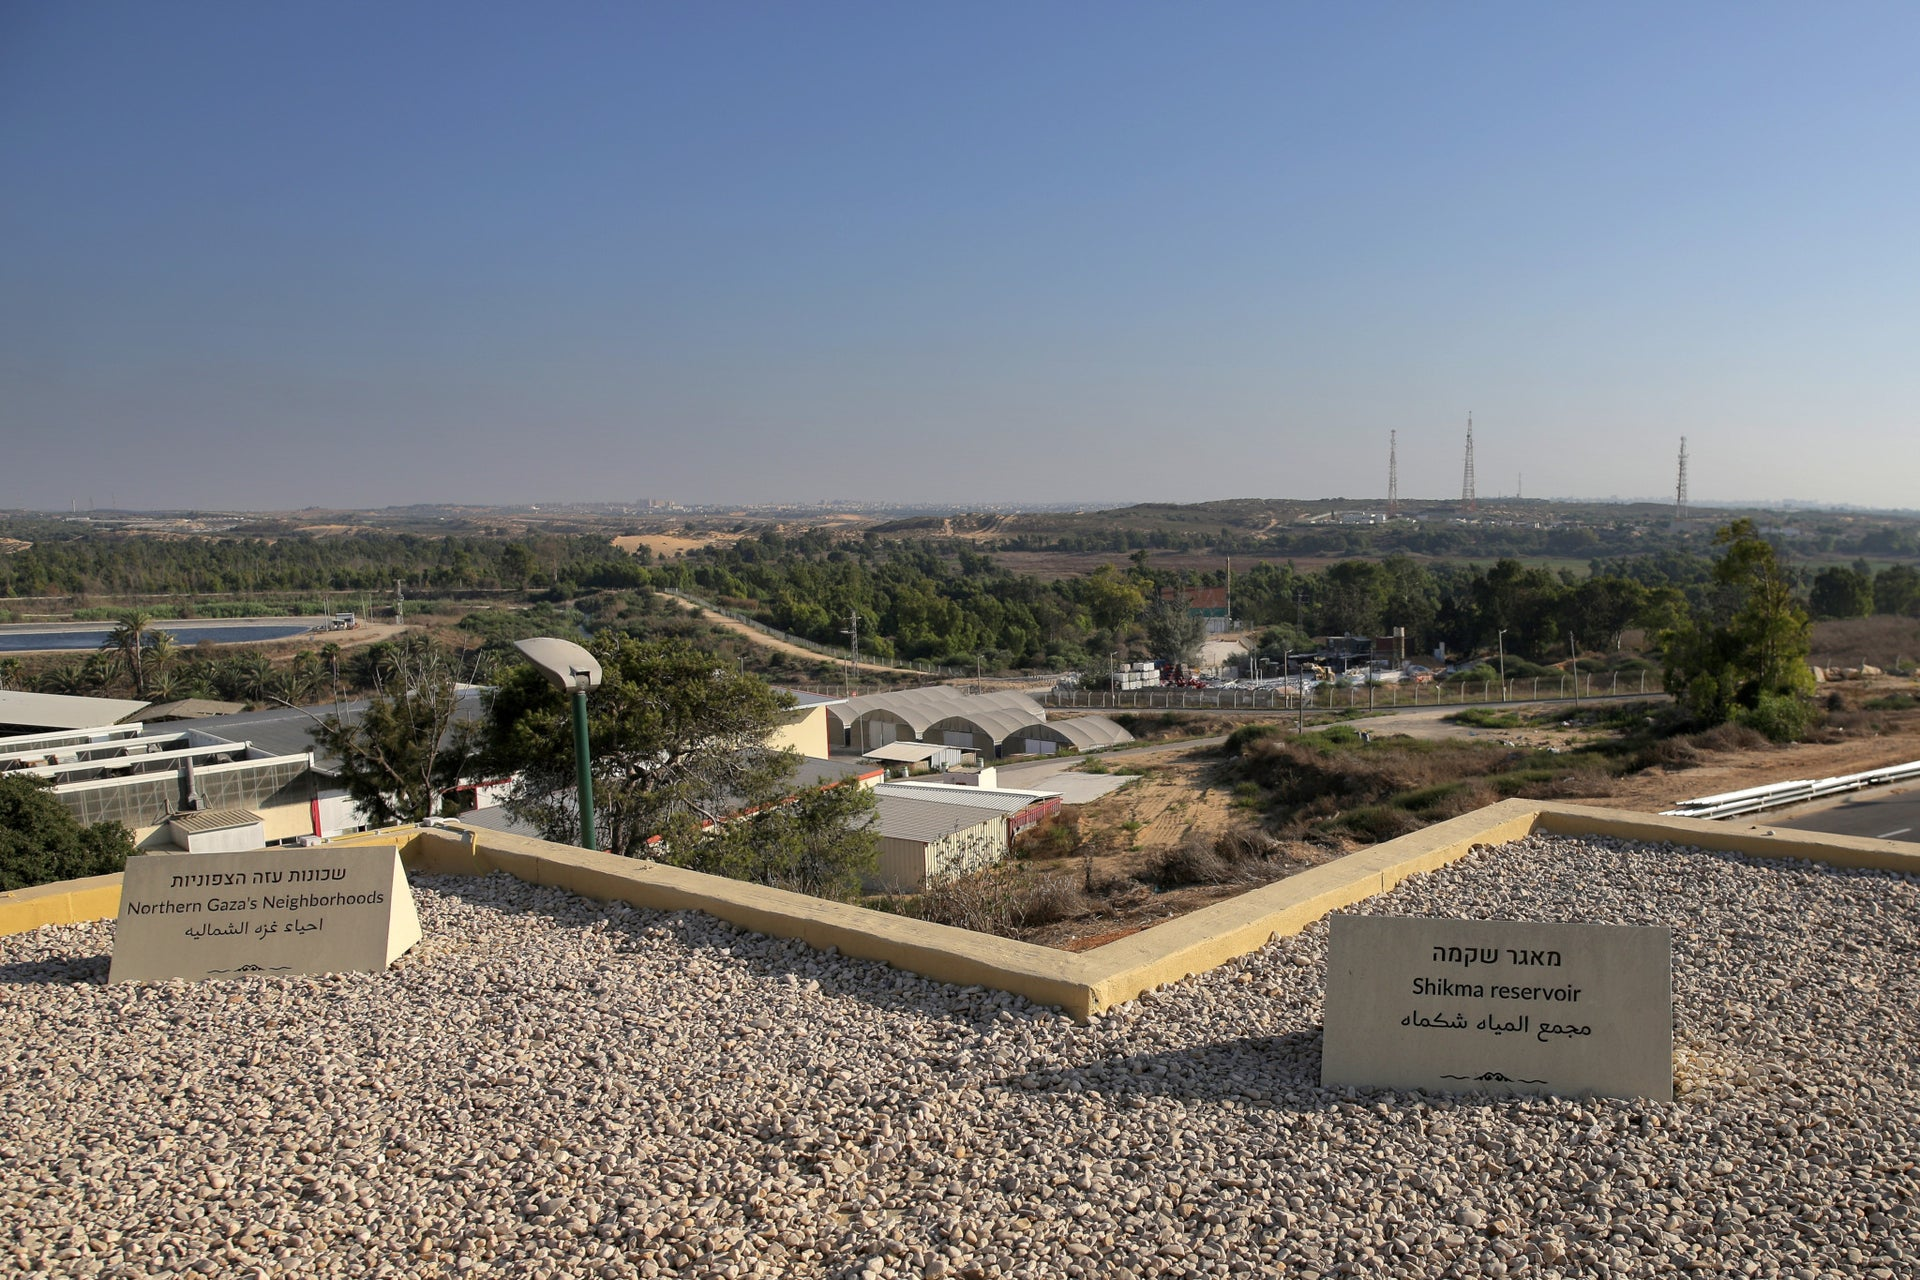 A view of Gaza's northernmost neighborhoods from the roof of Beit Alami (Alami House) in Zikim, southern Israel, August 2019.